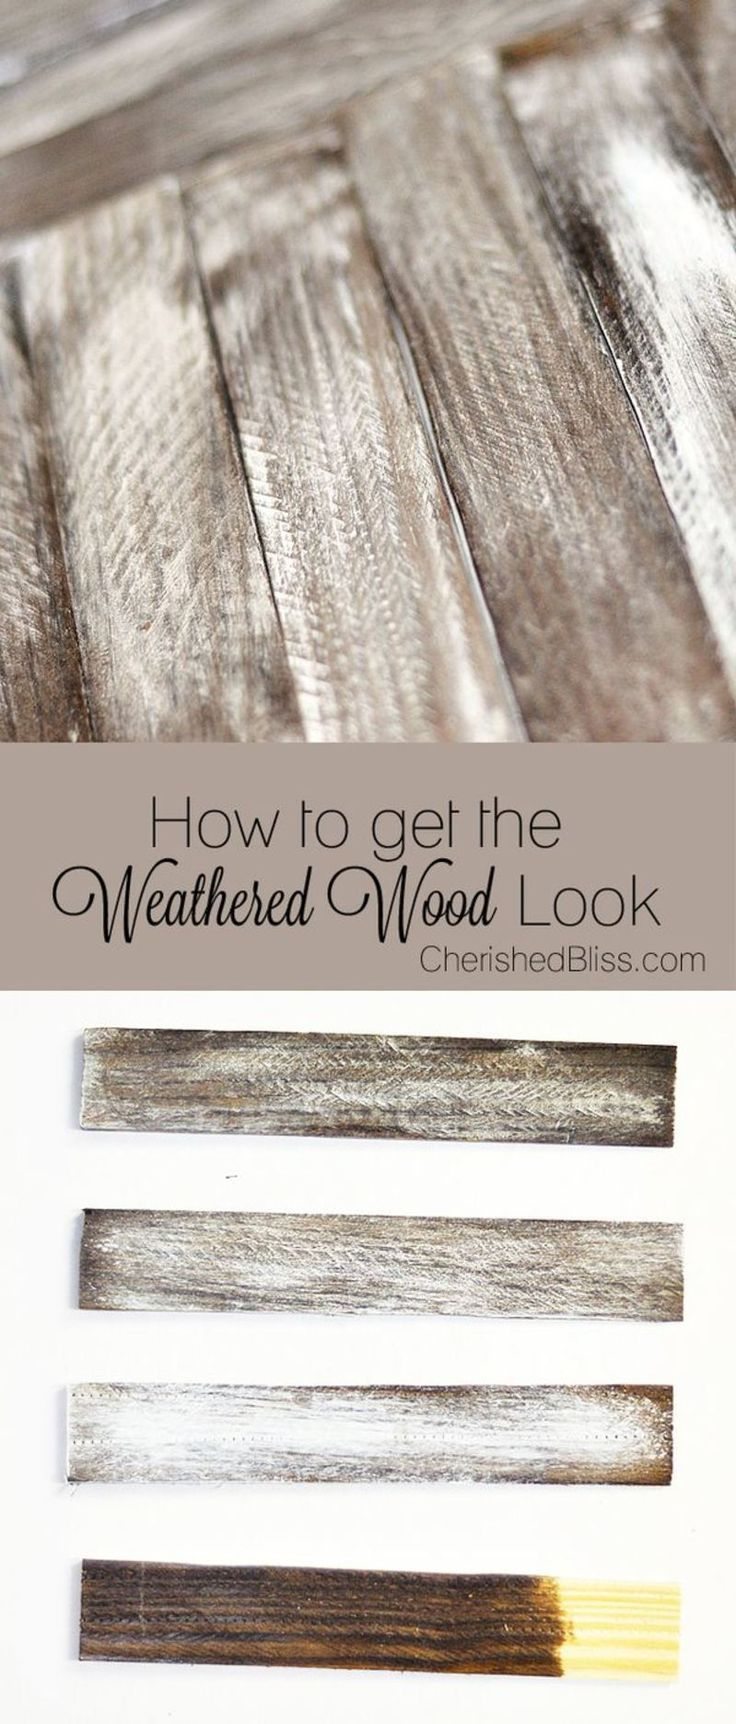 Make new wood look OLD with this tutorial on how to Weather Wood.